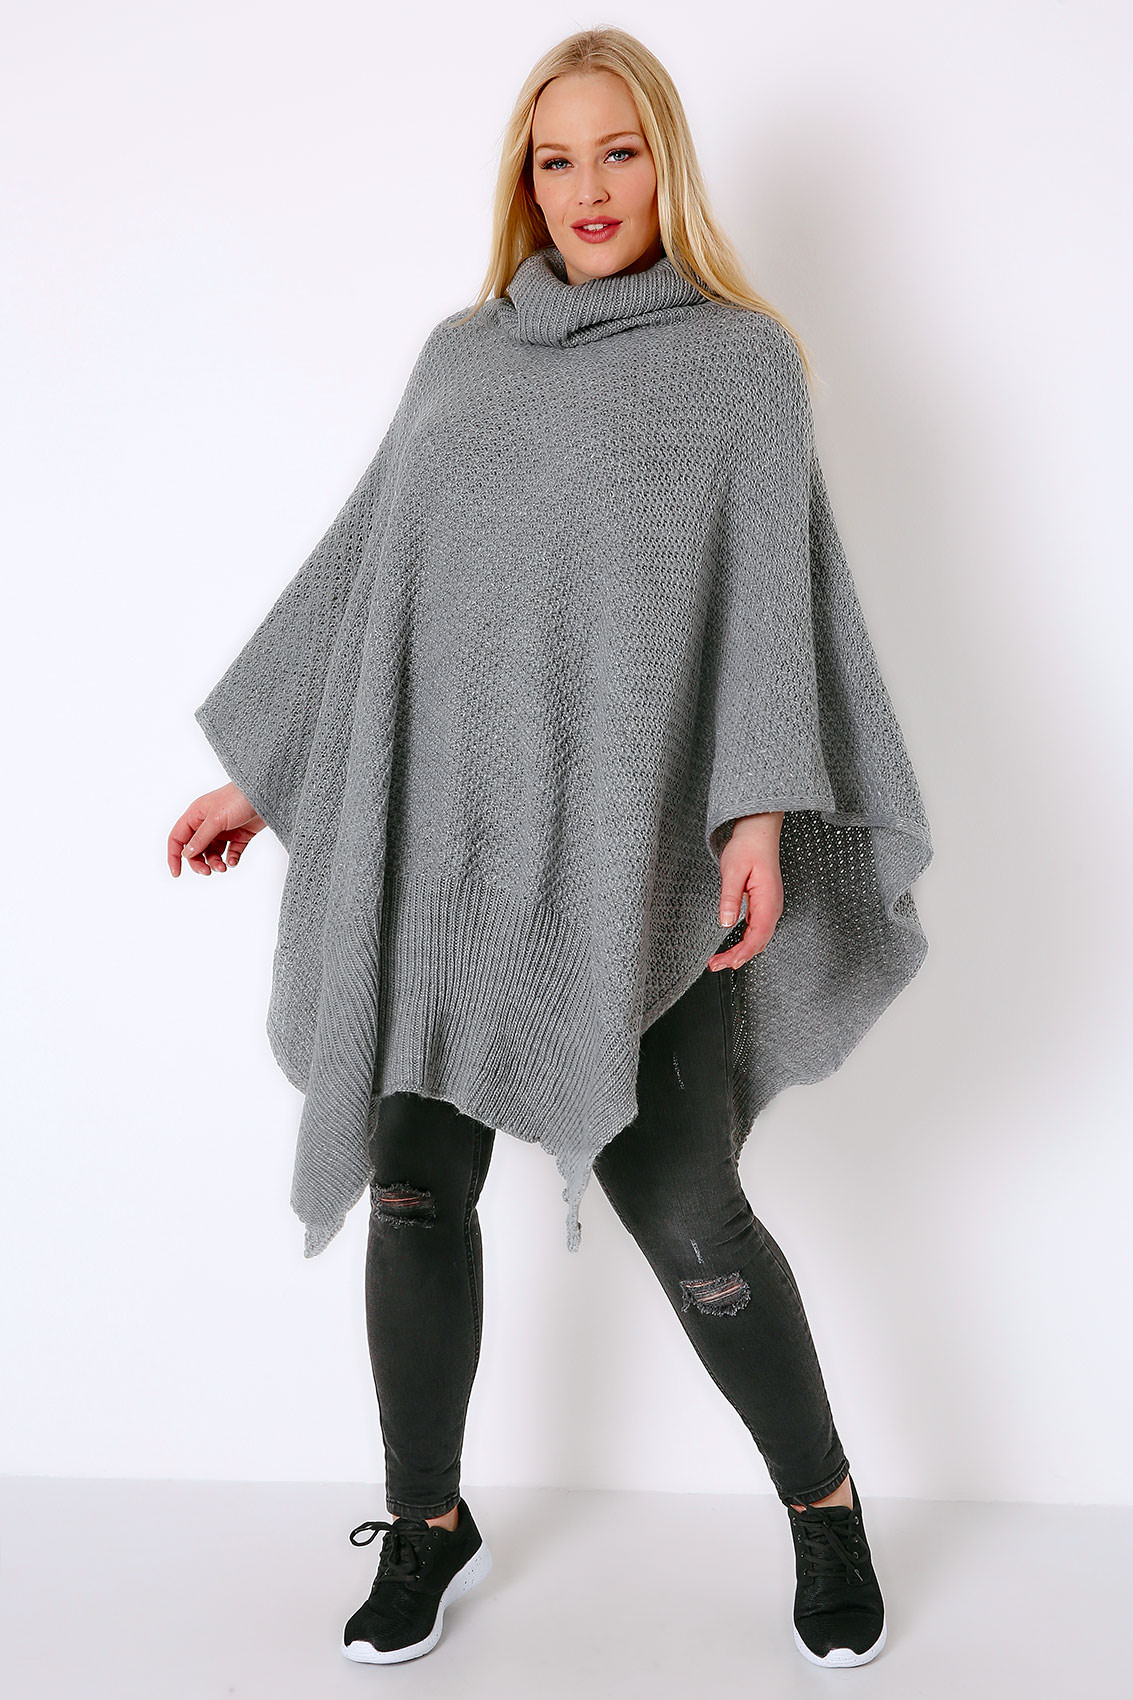 Cowl Neck Poncho Knitting Pattern : Grey Knitted Cowl Neck Poncho, One size